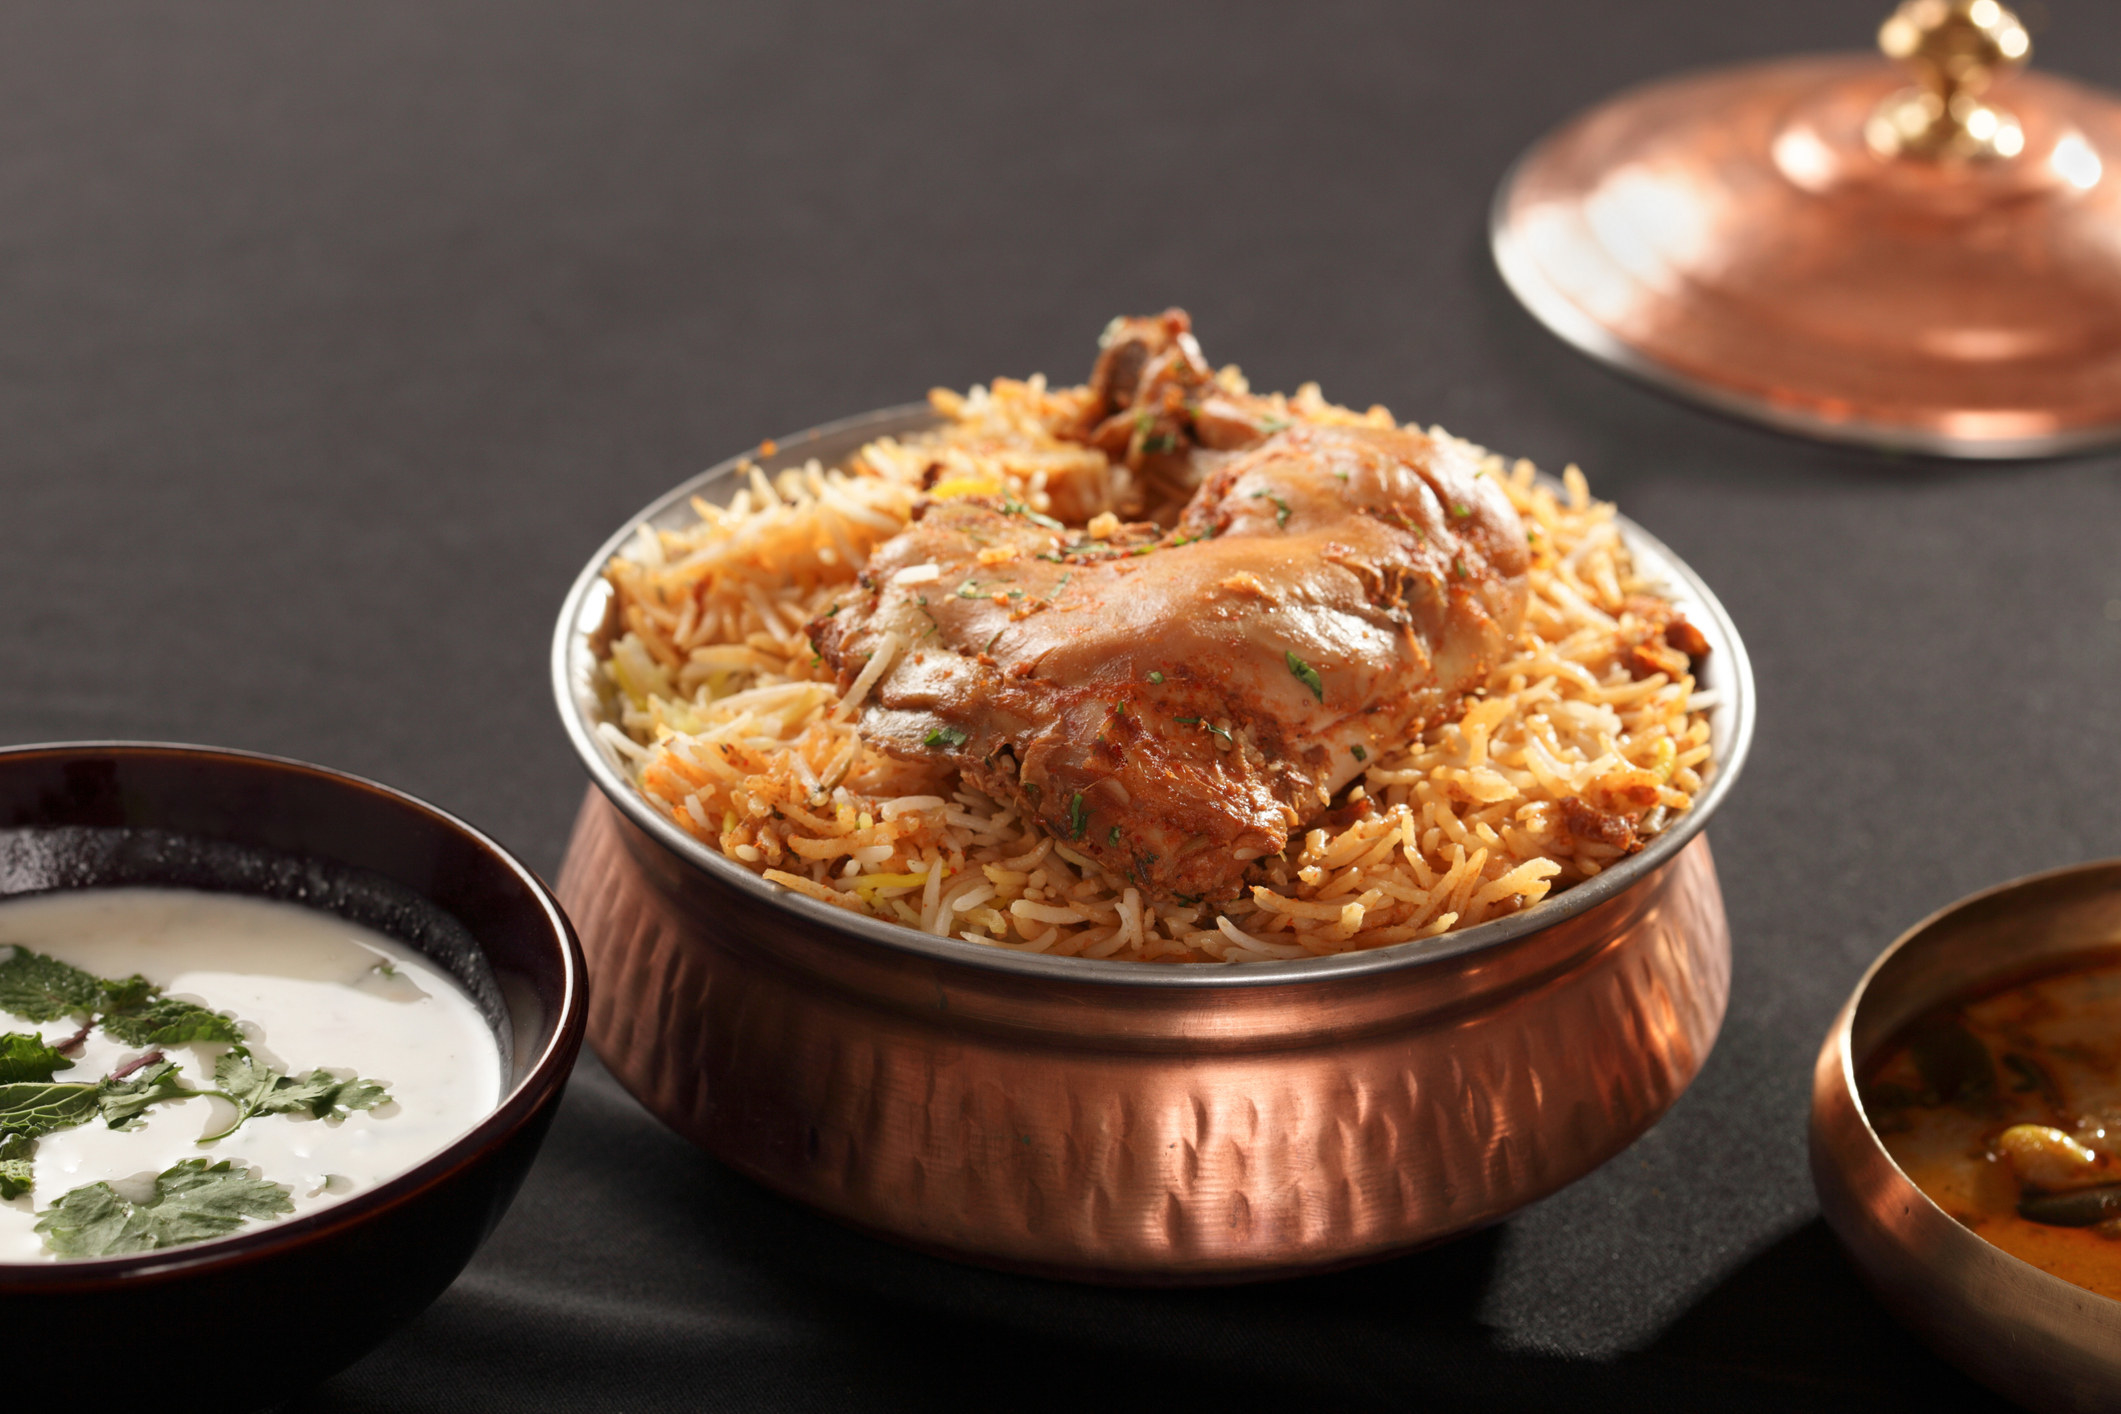 Chicken biryani, served in a copper bowl with a side of raita